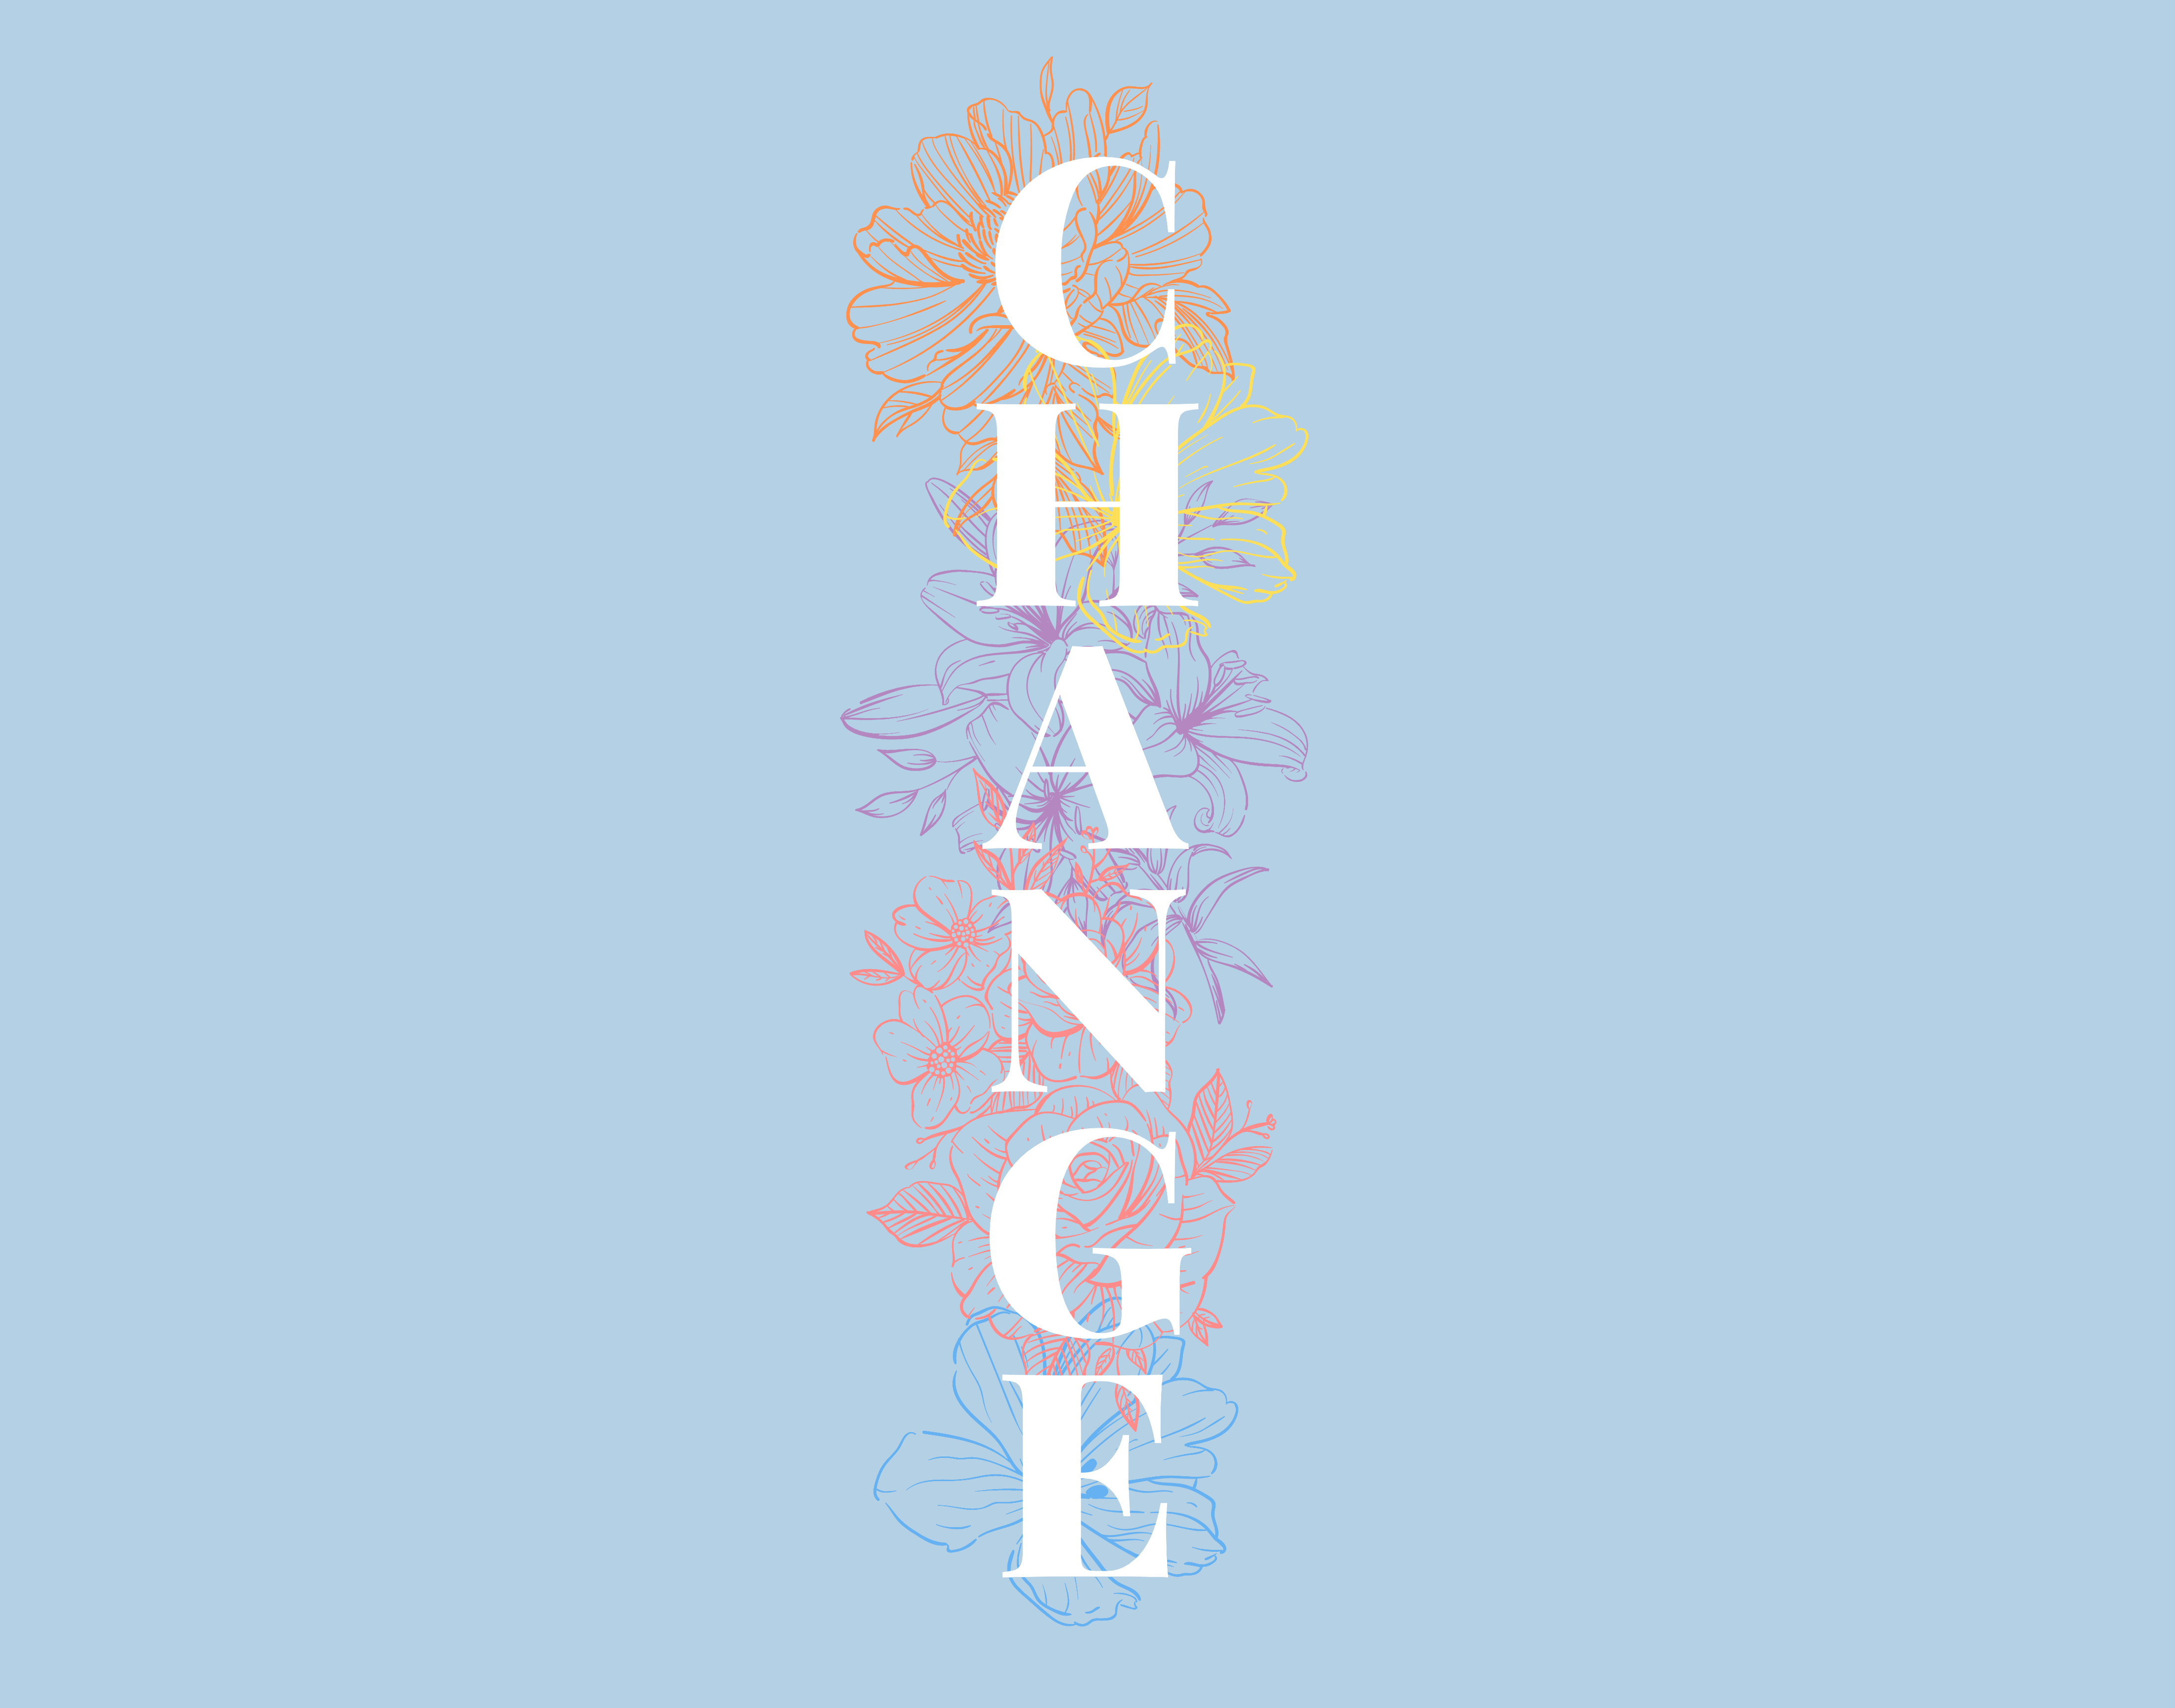 Poster artwork for the Change: Youth Social Media Project